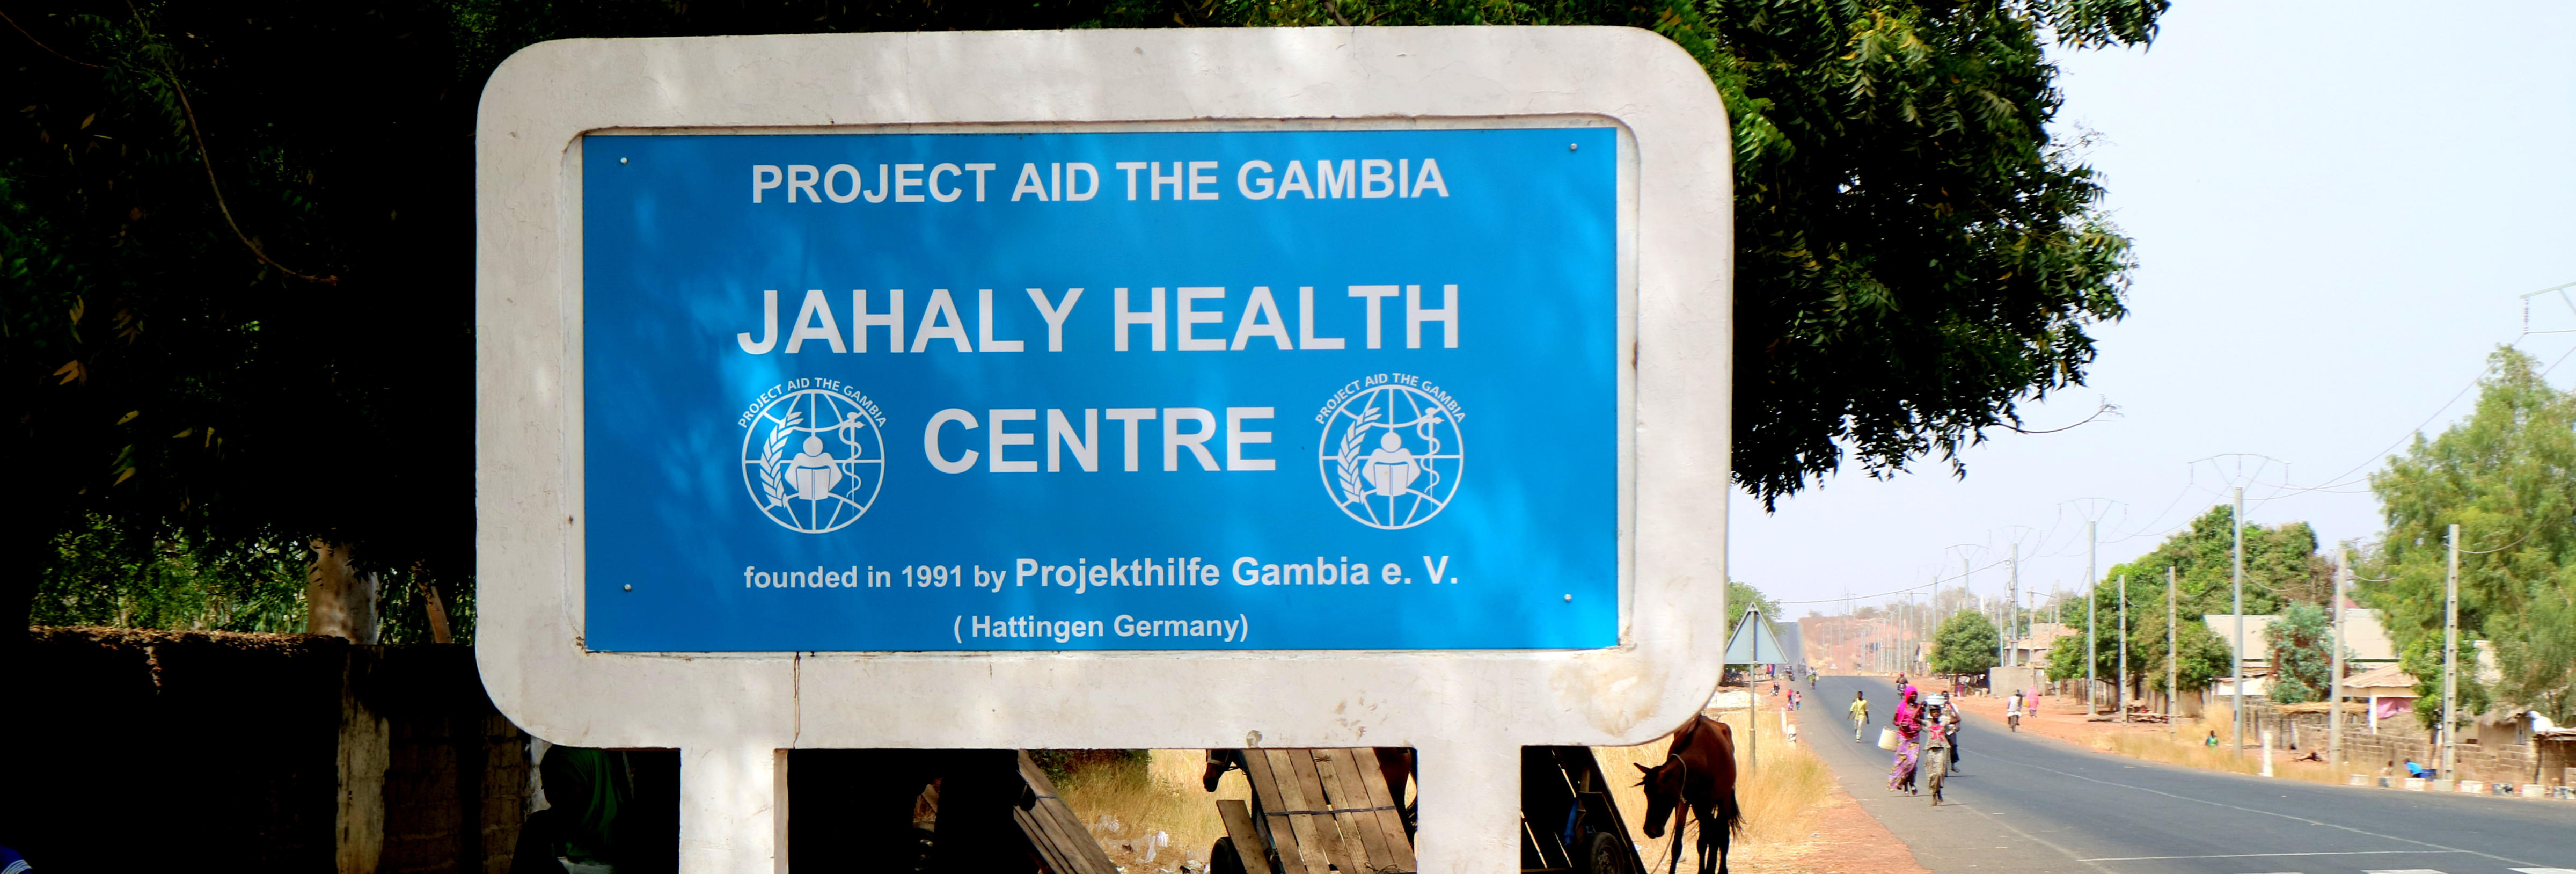 Sign-board-Jahaly-Health-Centre-Buschklinik-4